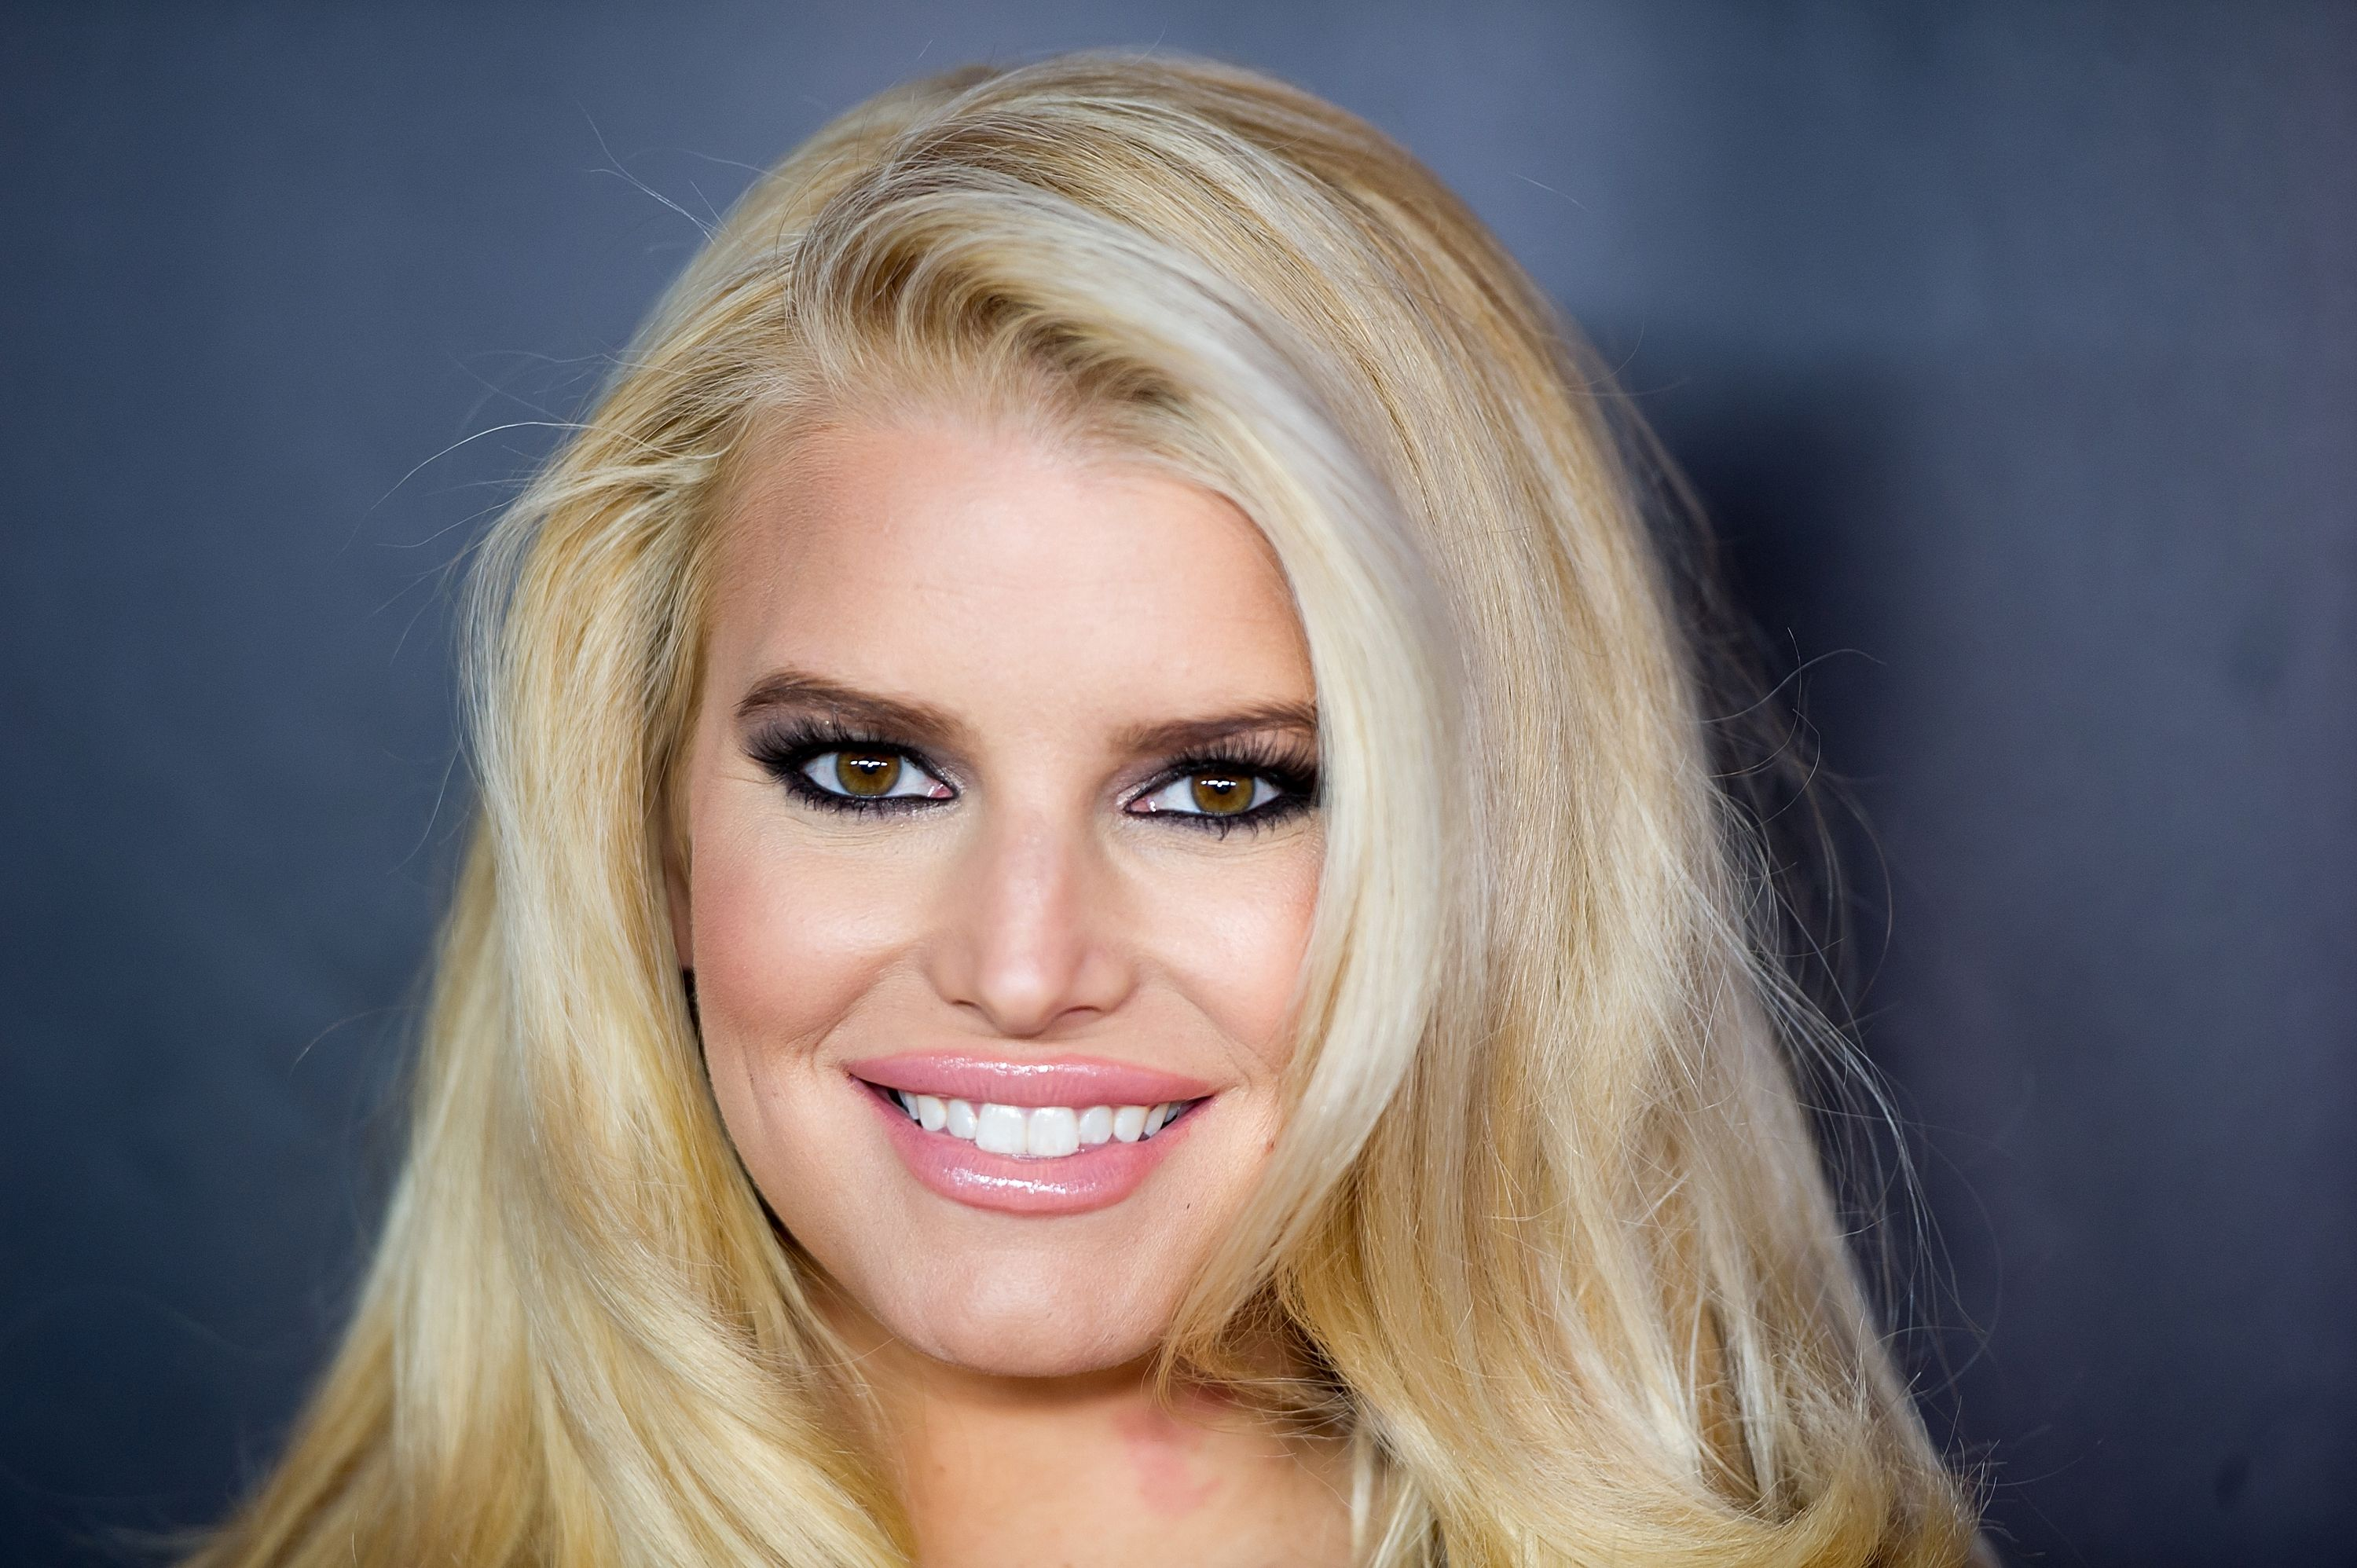 Jessica Simpson during the 27th Annual Footwear News Achievement Awards at the IAC Building on December 3, 2013. | Source: Getty Images